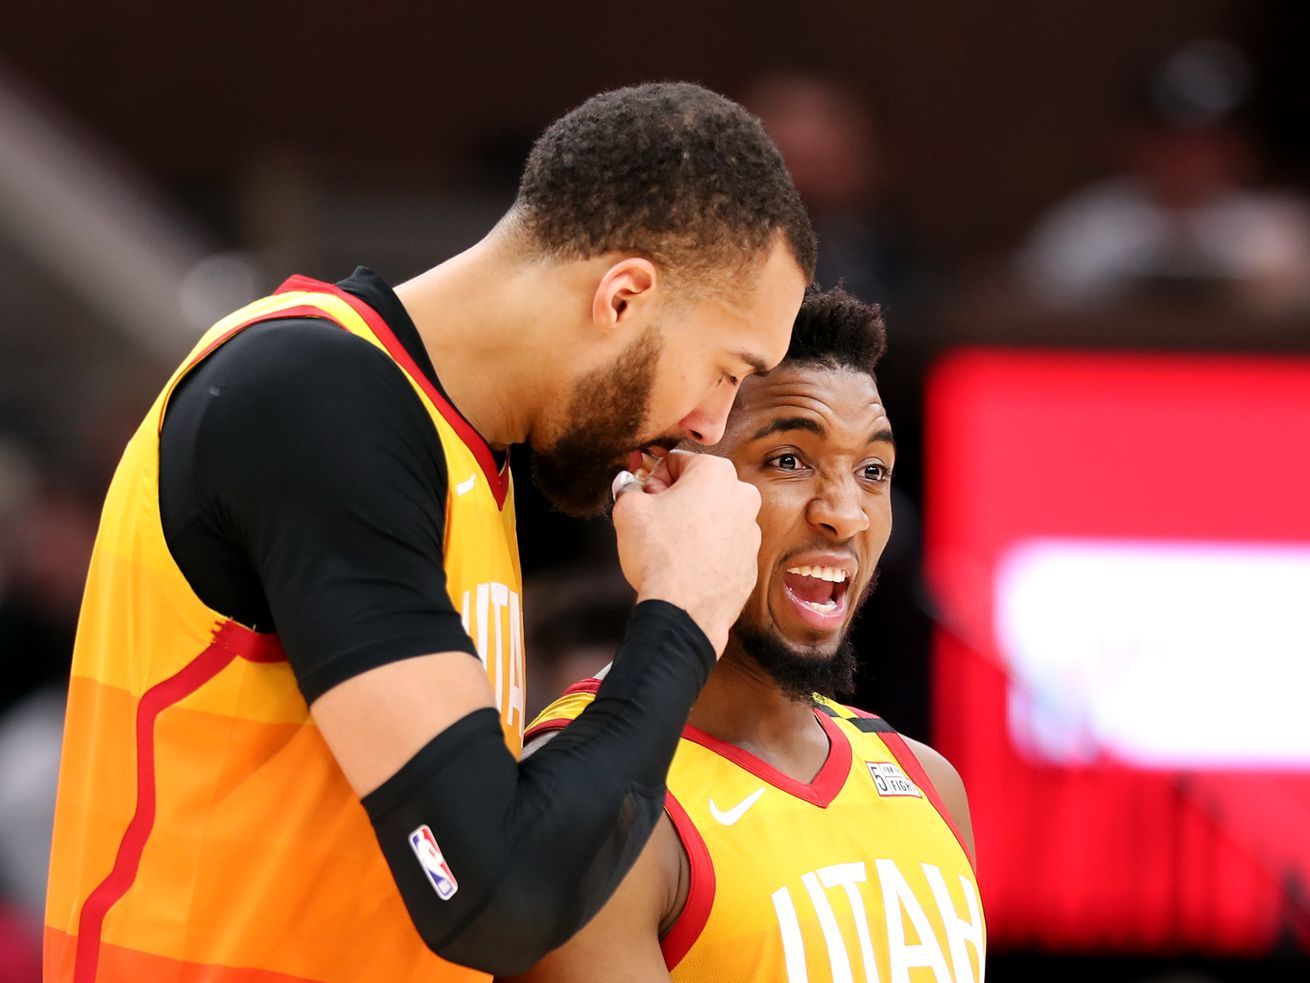 Utah Jazz center Rudy Gobert (27) and Utah Jazz guard Donovan Mitchell (45) talk after a timeout as the Utah Jazz and the Miami Heat play in an NBA basketball game at Vivint Smart Home Arena in Salt Lake City on Wednesday, Feb. 12, 2020. Utah won 116-101.